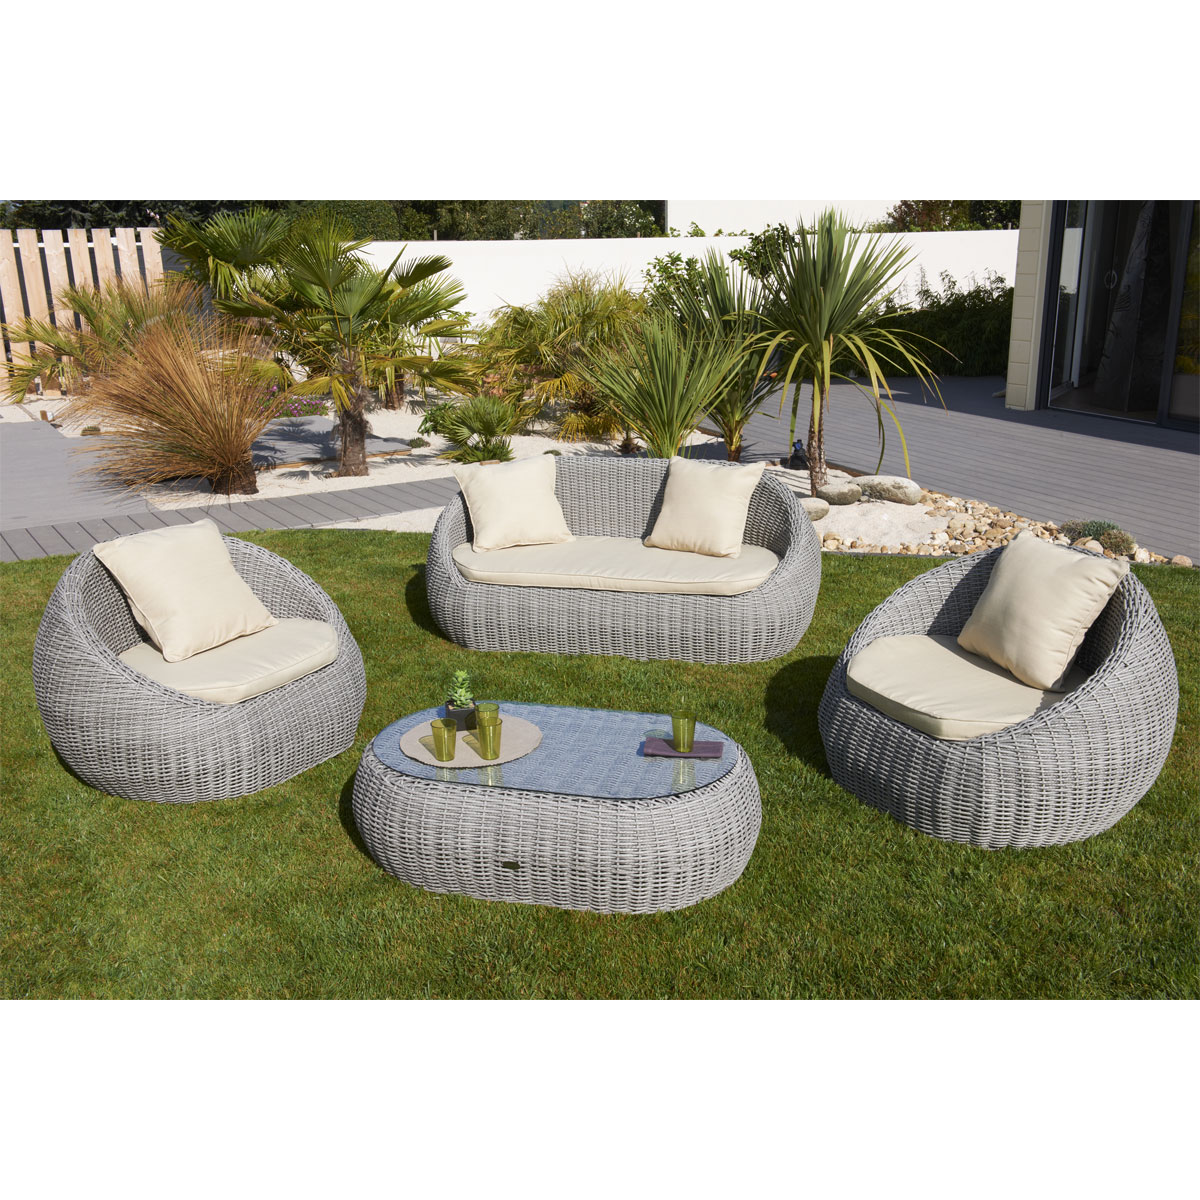 salon de jardin resine tressee gris pas cher id es de. Black Bedroom Furniture Sets. Home Design Ideas